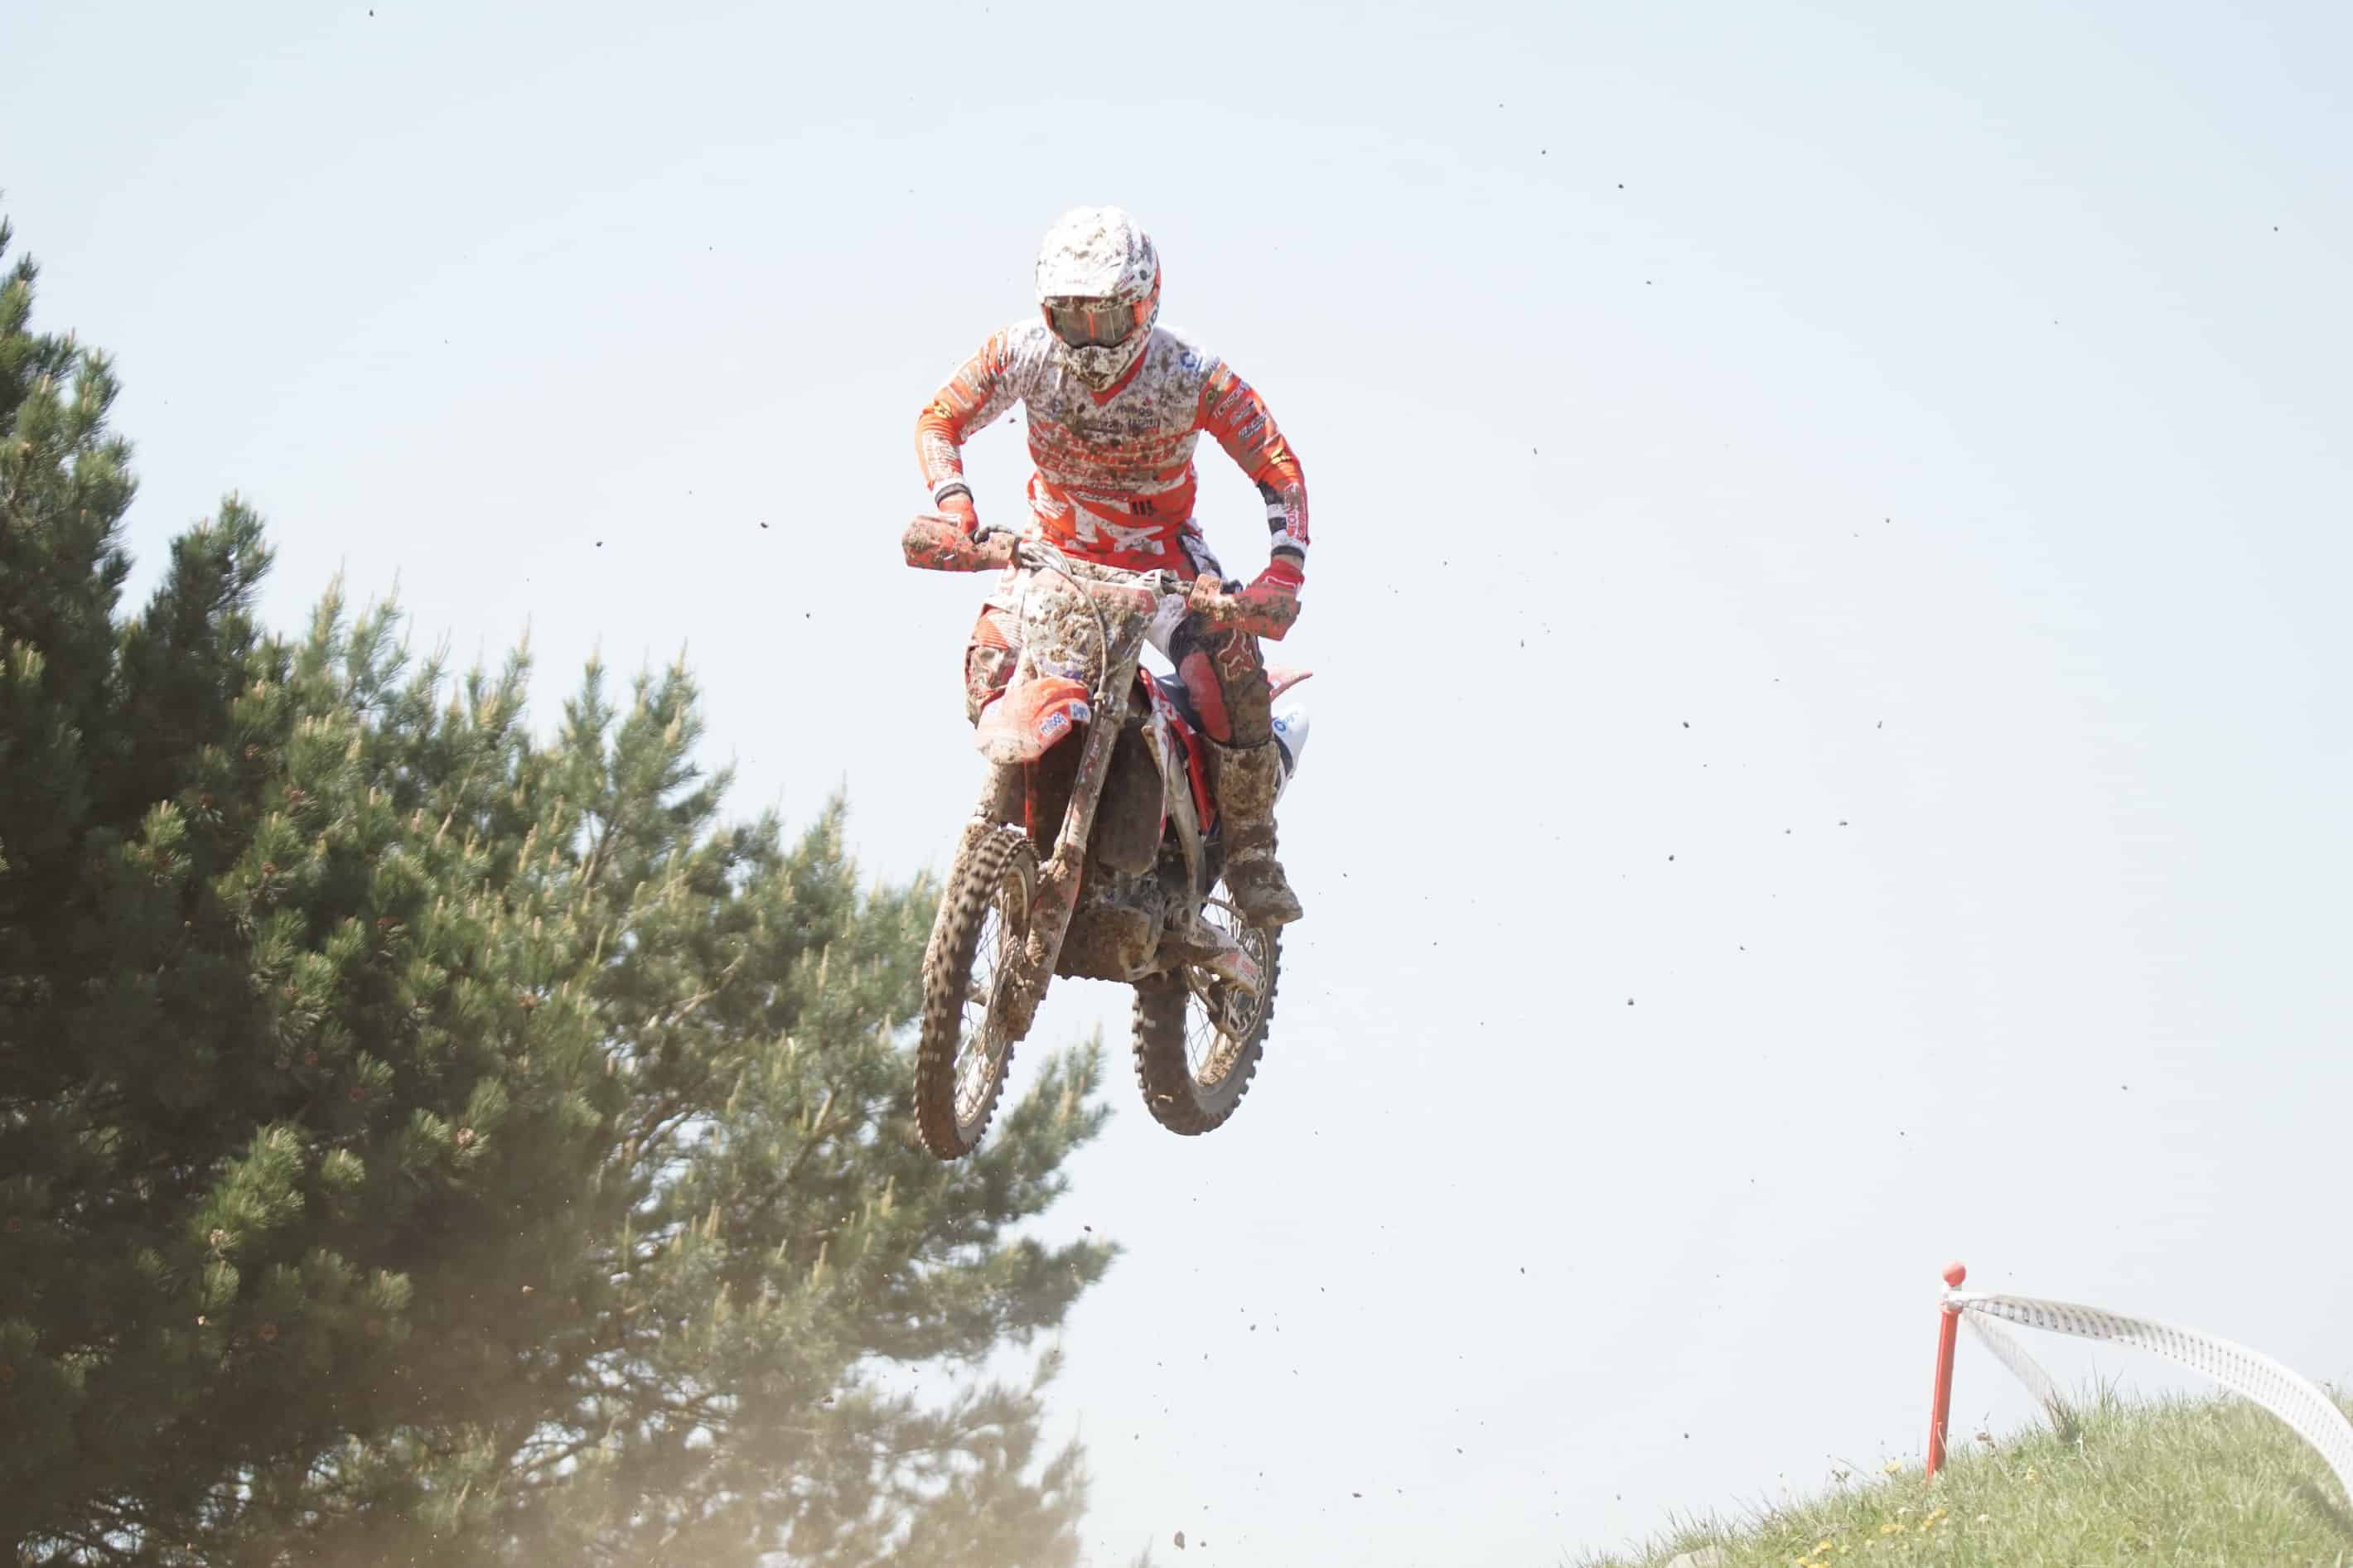 DSC 402_Moto Cross Sittendorf Teil1 am 29.04.2018